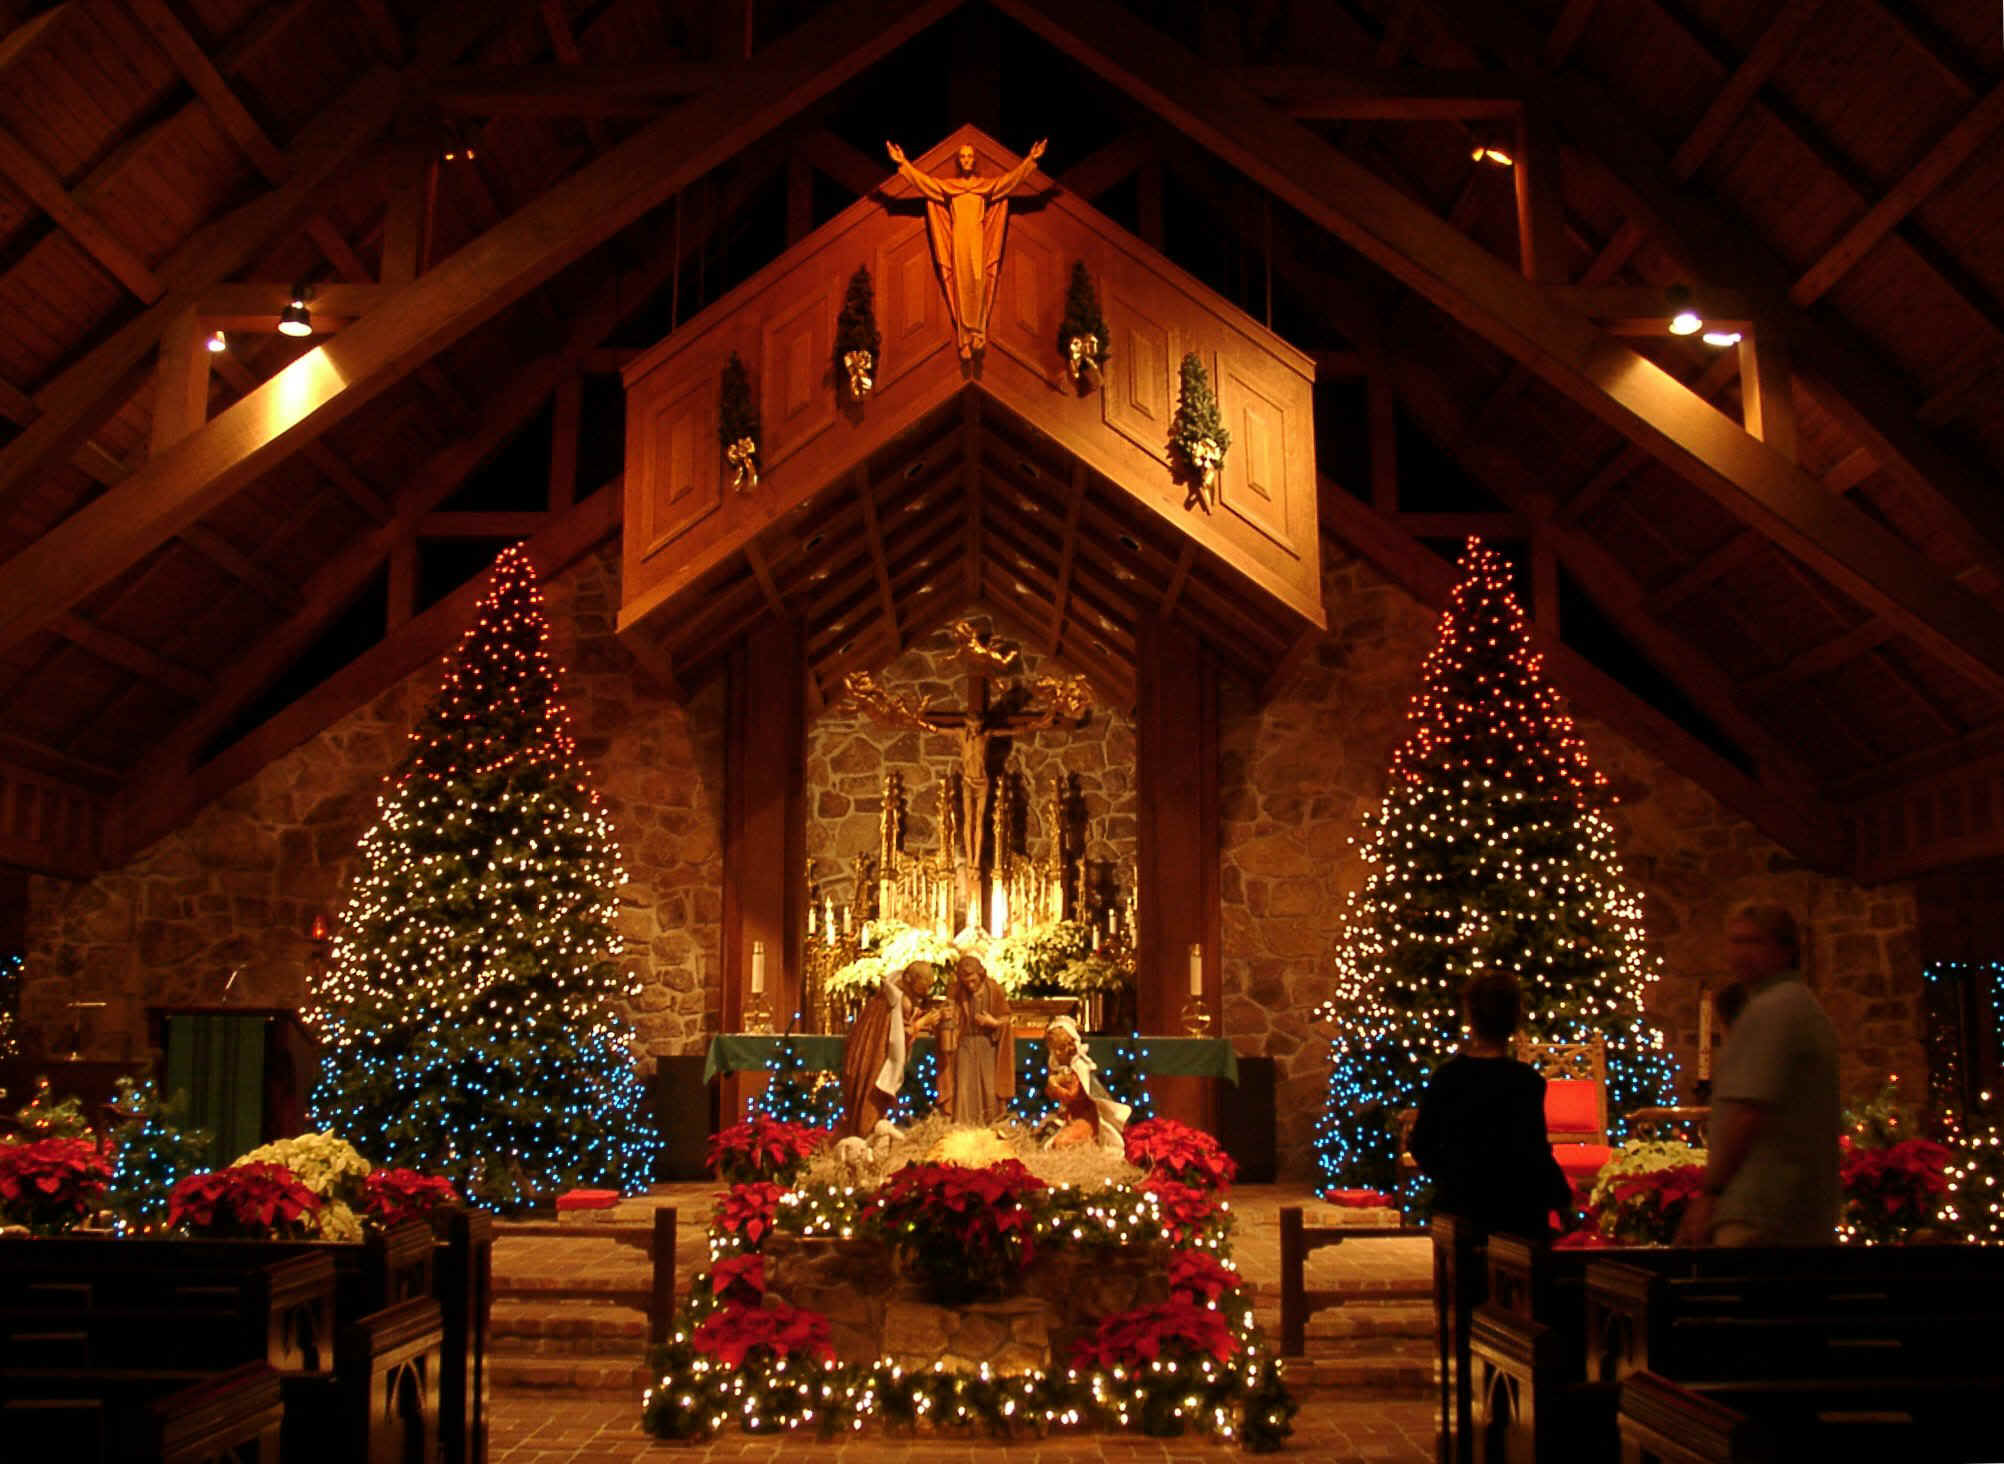 Church-Scenes-at-Christmas-christmas-26601223-2004-1464.jpg